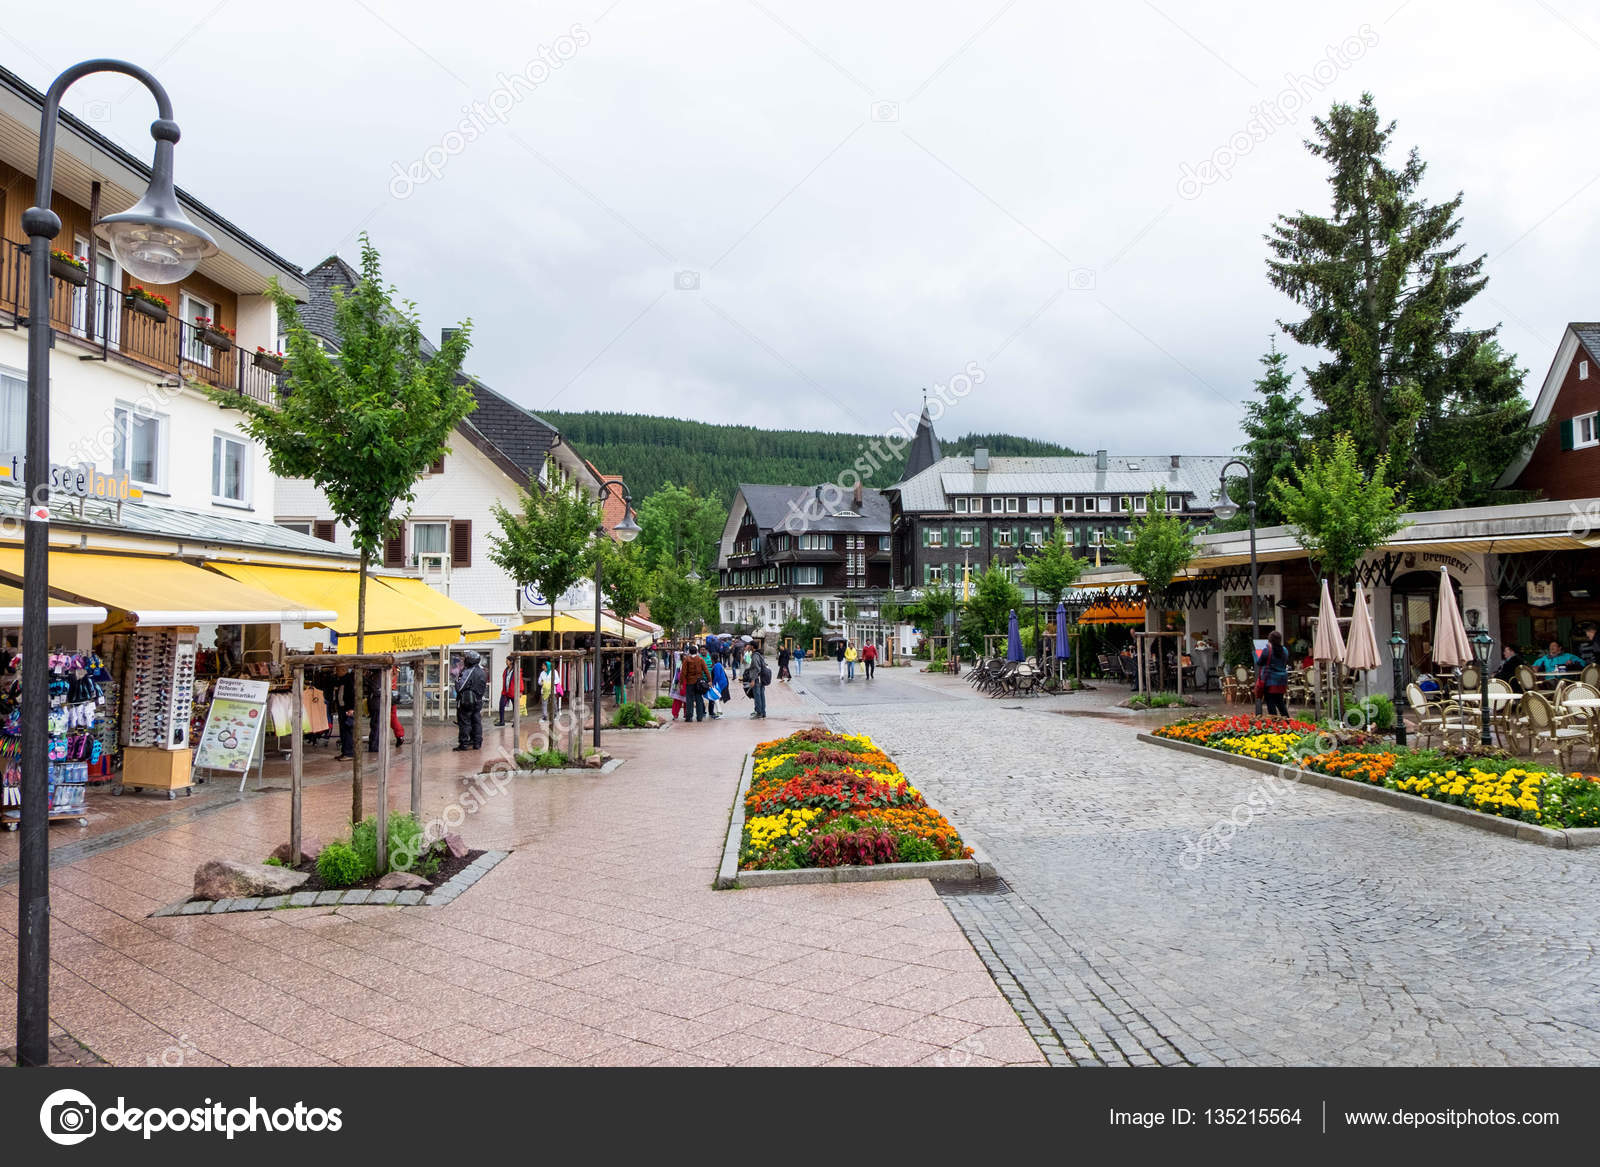 June 17 2016 Titisee Neustadt Germany Summer Raining Day In Titisee Neustadt Village Tourists Are Traveling Even Rain Falls Stock Editorial Photo C Yanisapae 135215564